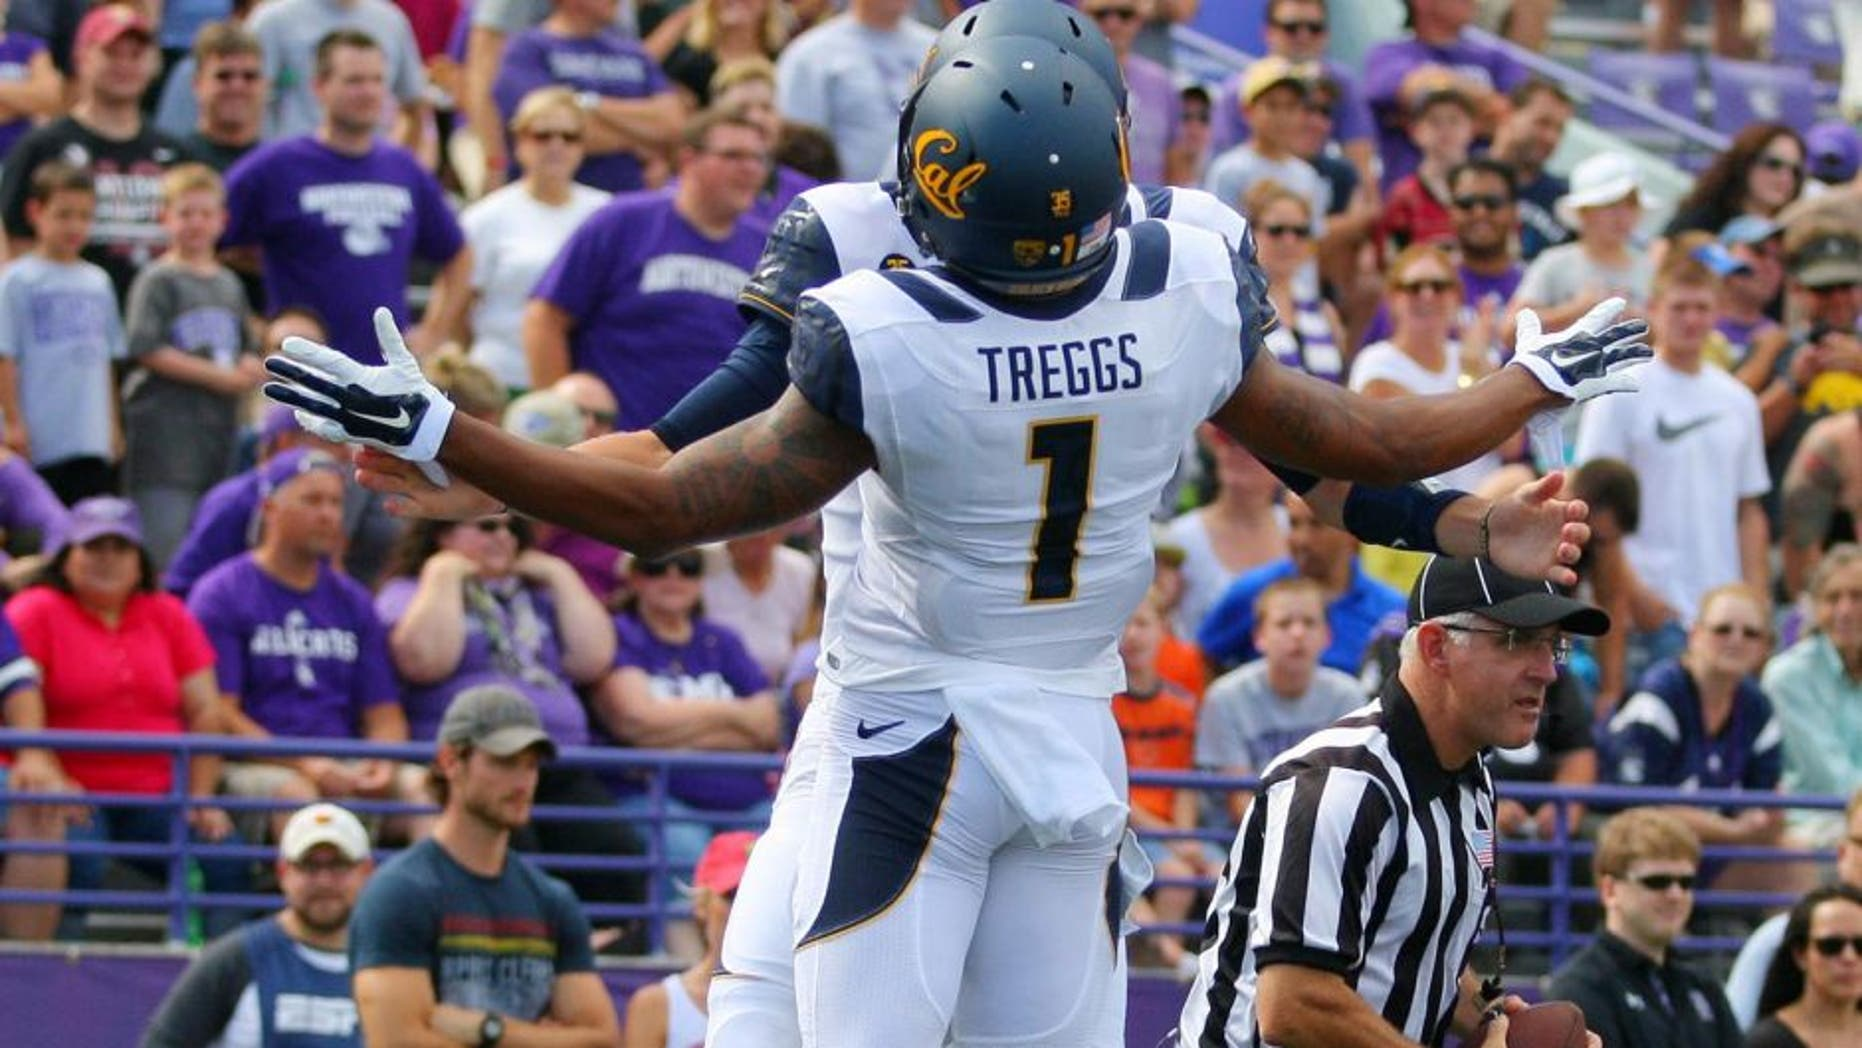 Aug 30, 2014; Evanston, IL, USA; California Golden Bears wide receiver Bryce Treggs (1) celebrates his touchdown with wide receiver Darius Powe (10) during the first half against the Northwestern Wildcats at Ryan Field. Mandatory Credit: Dennis Wierzbicki-USA TODAY Sports